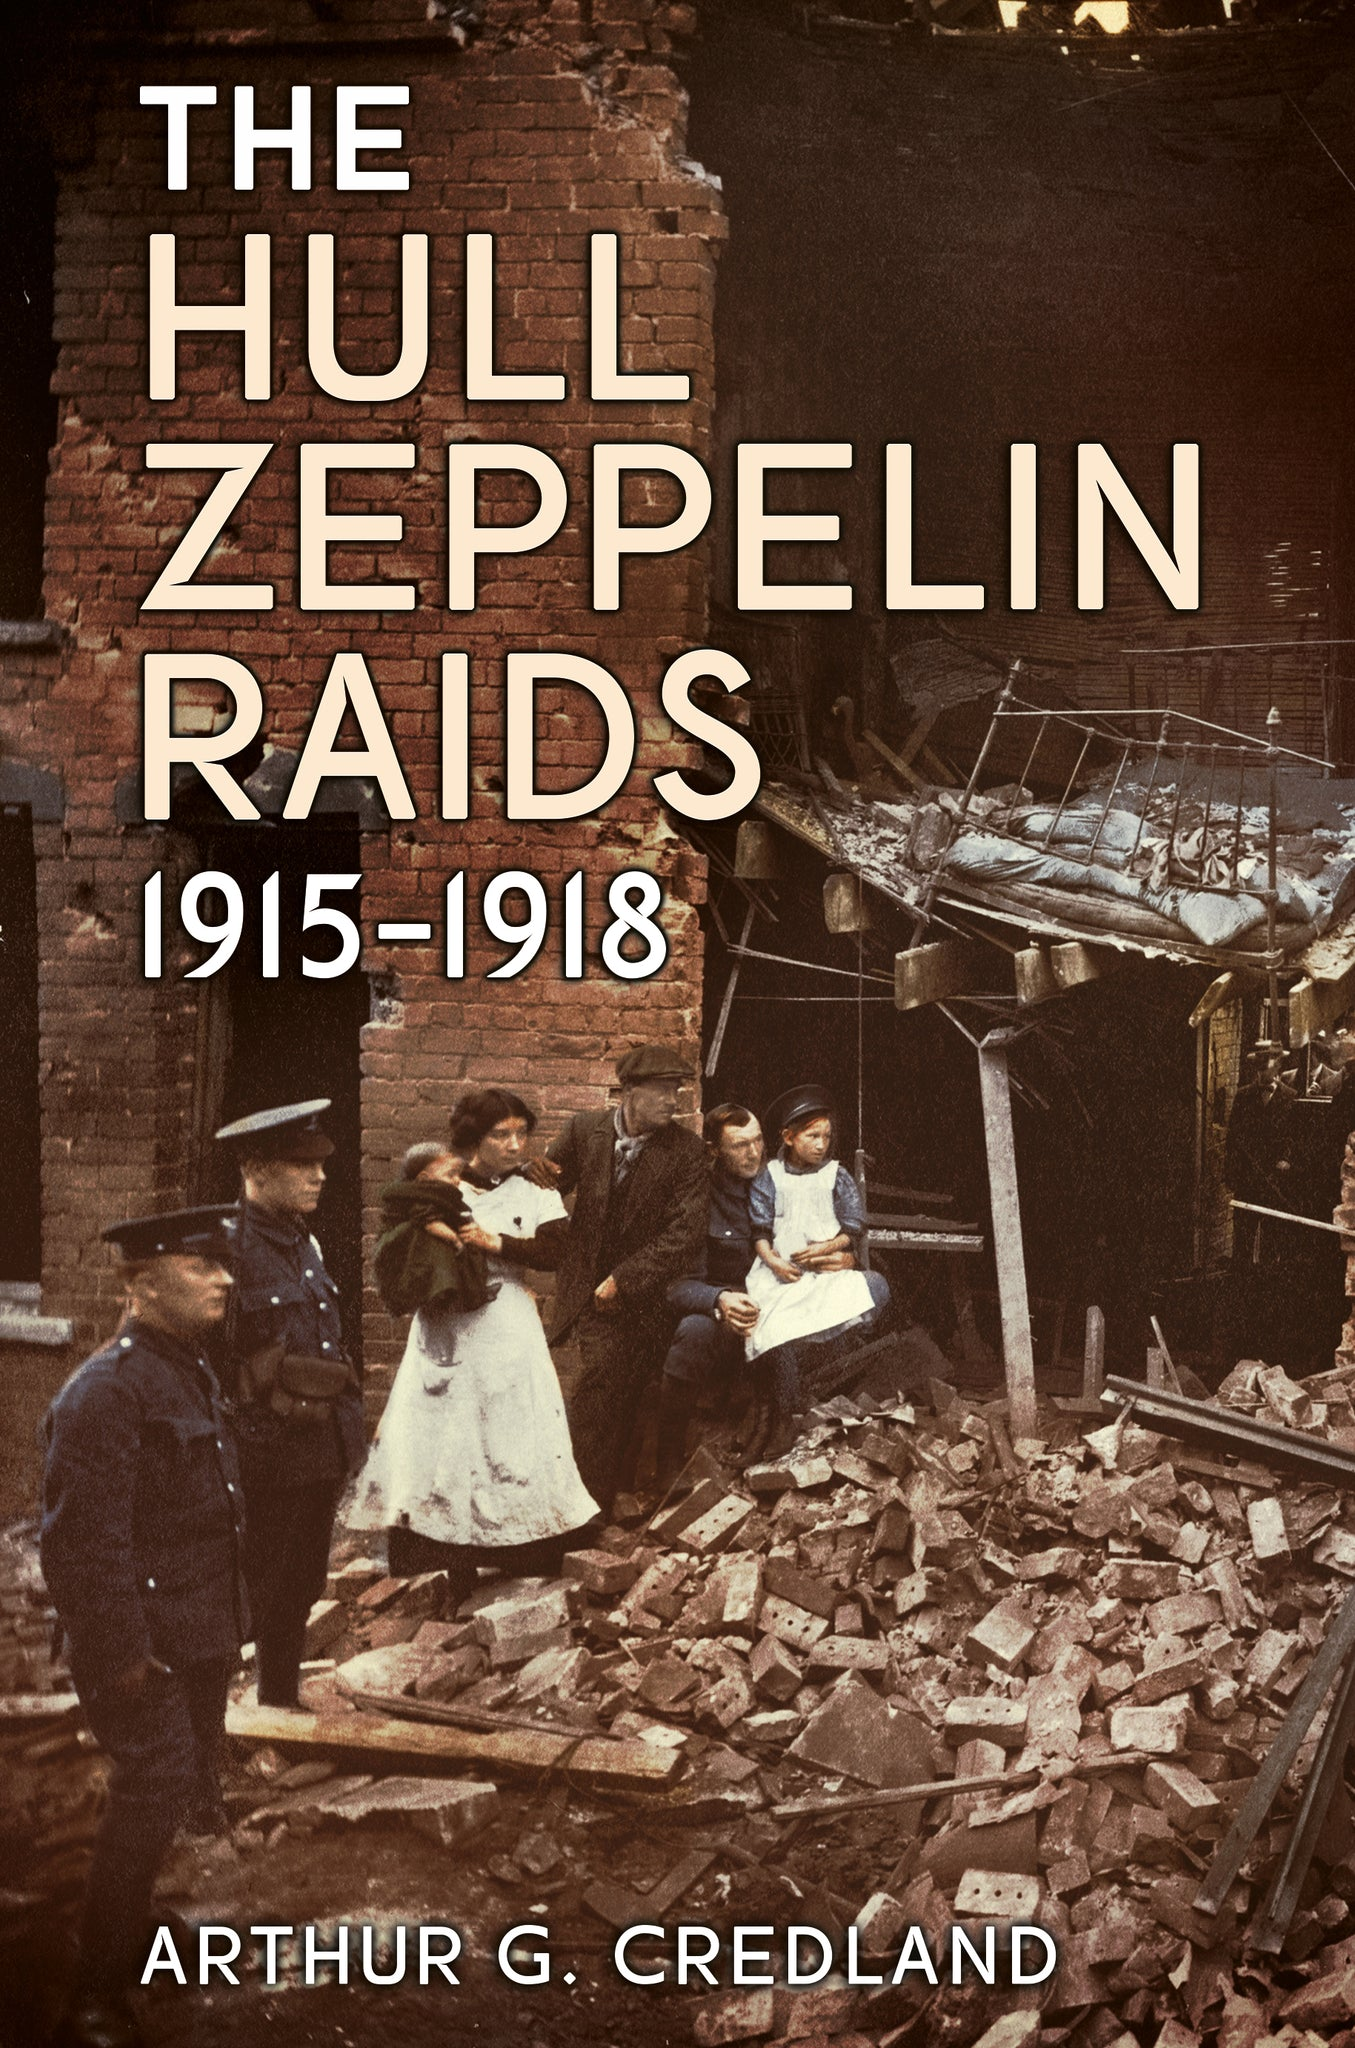 The Hull Zeppelin Raids 1915-1918